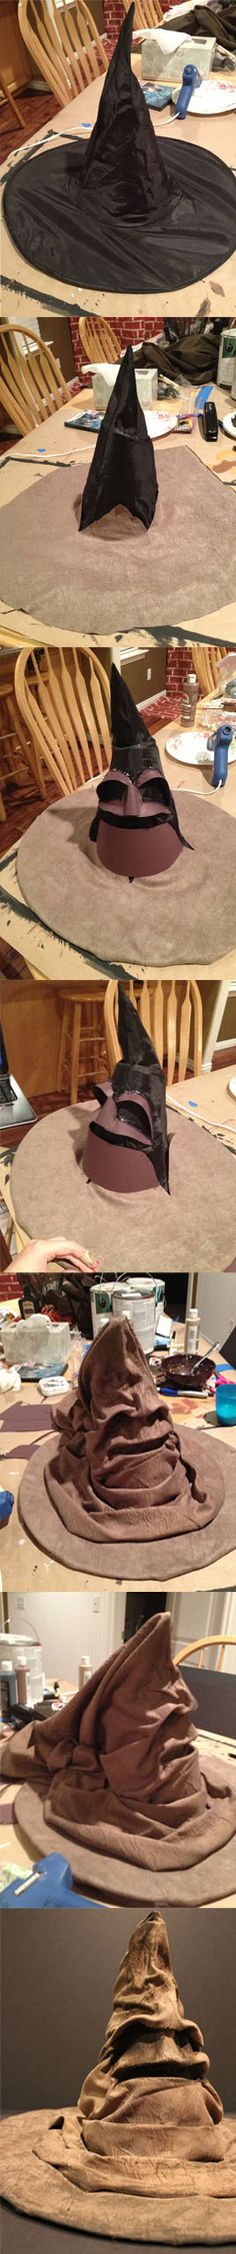 DIY Harry Potter Sorting Hat